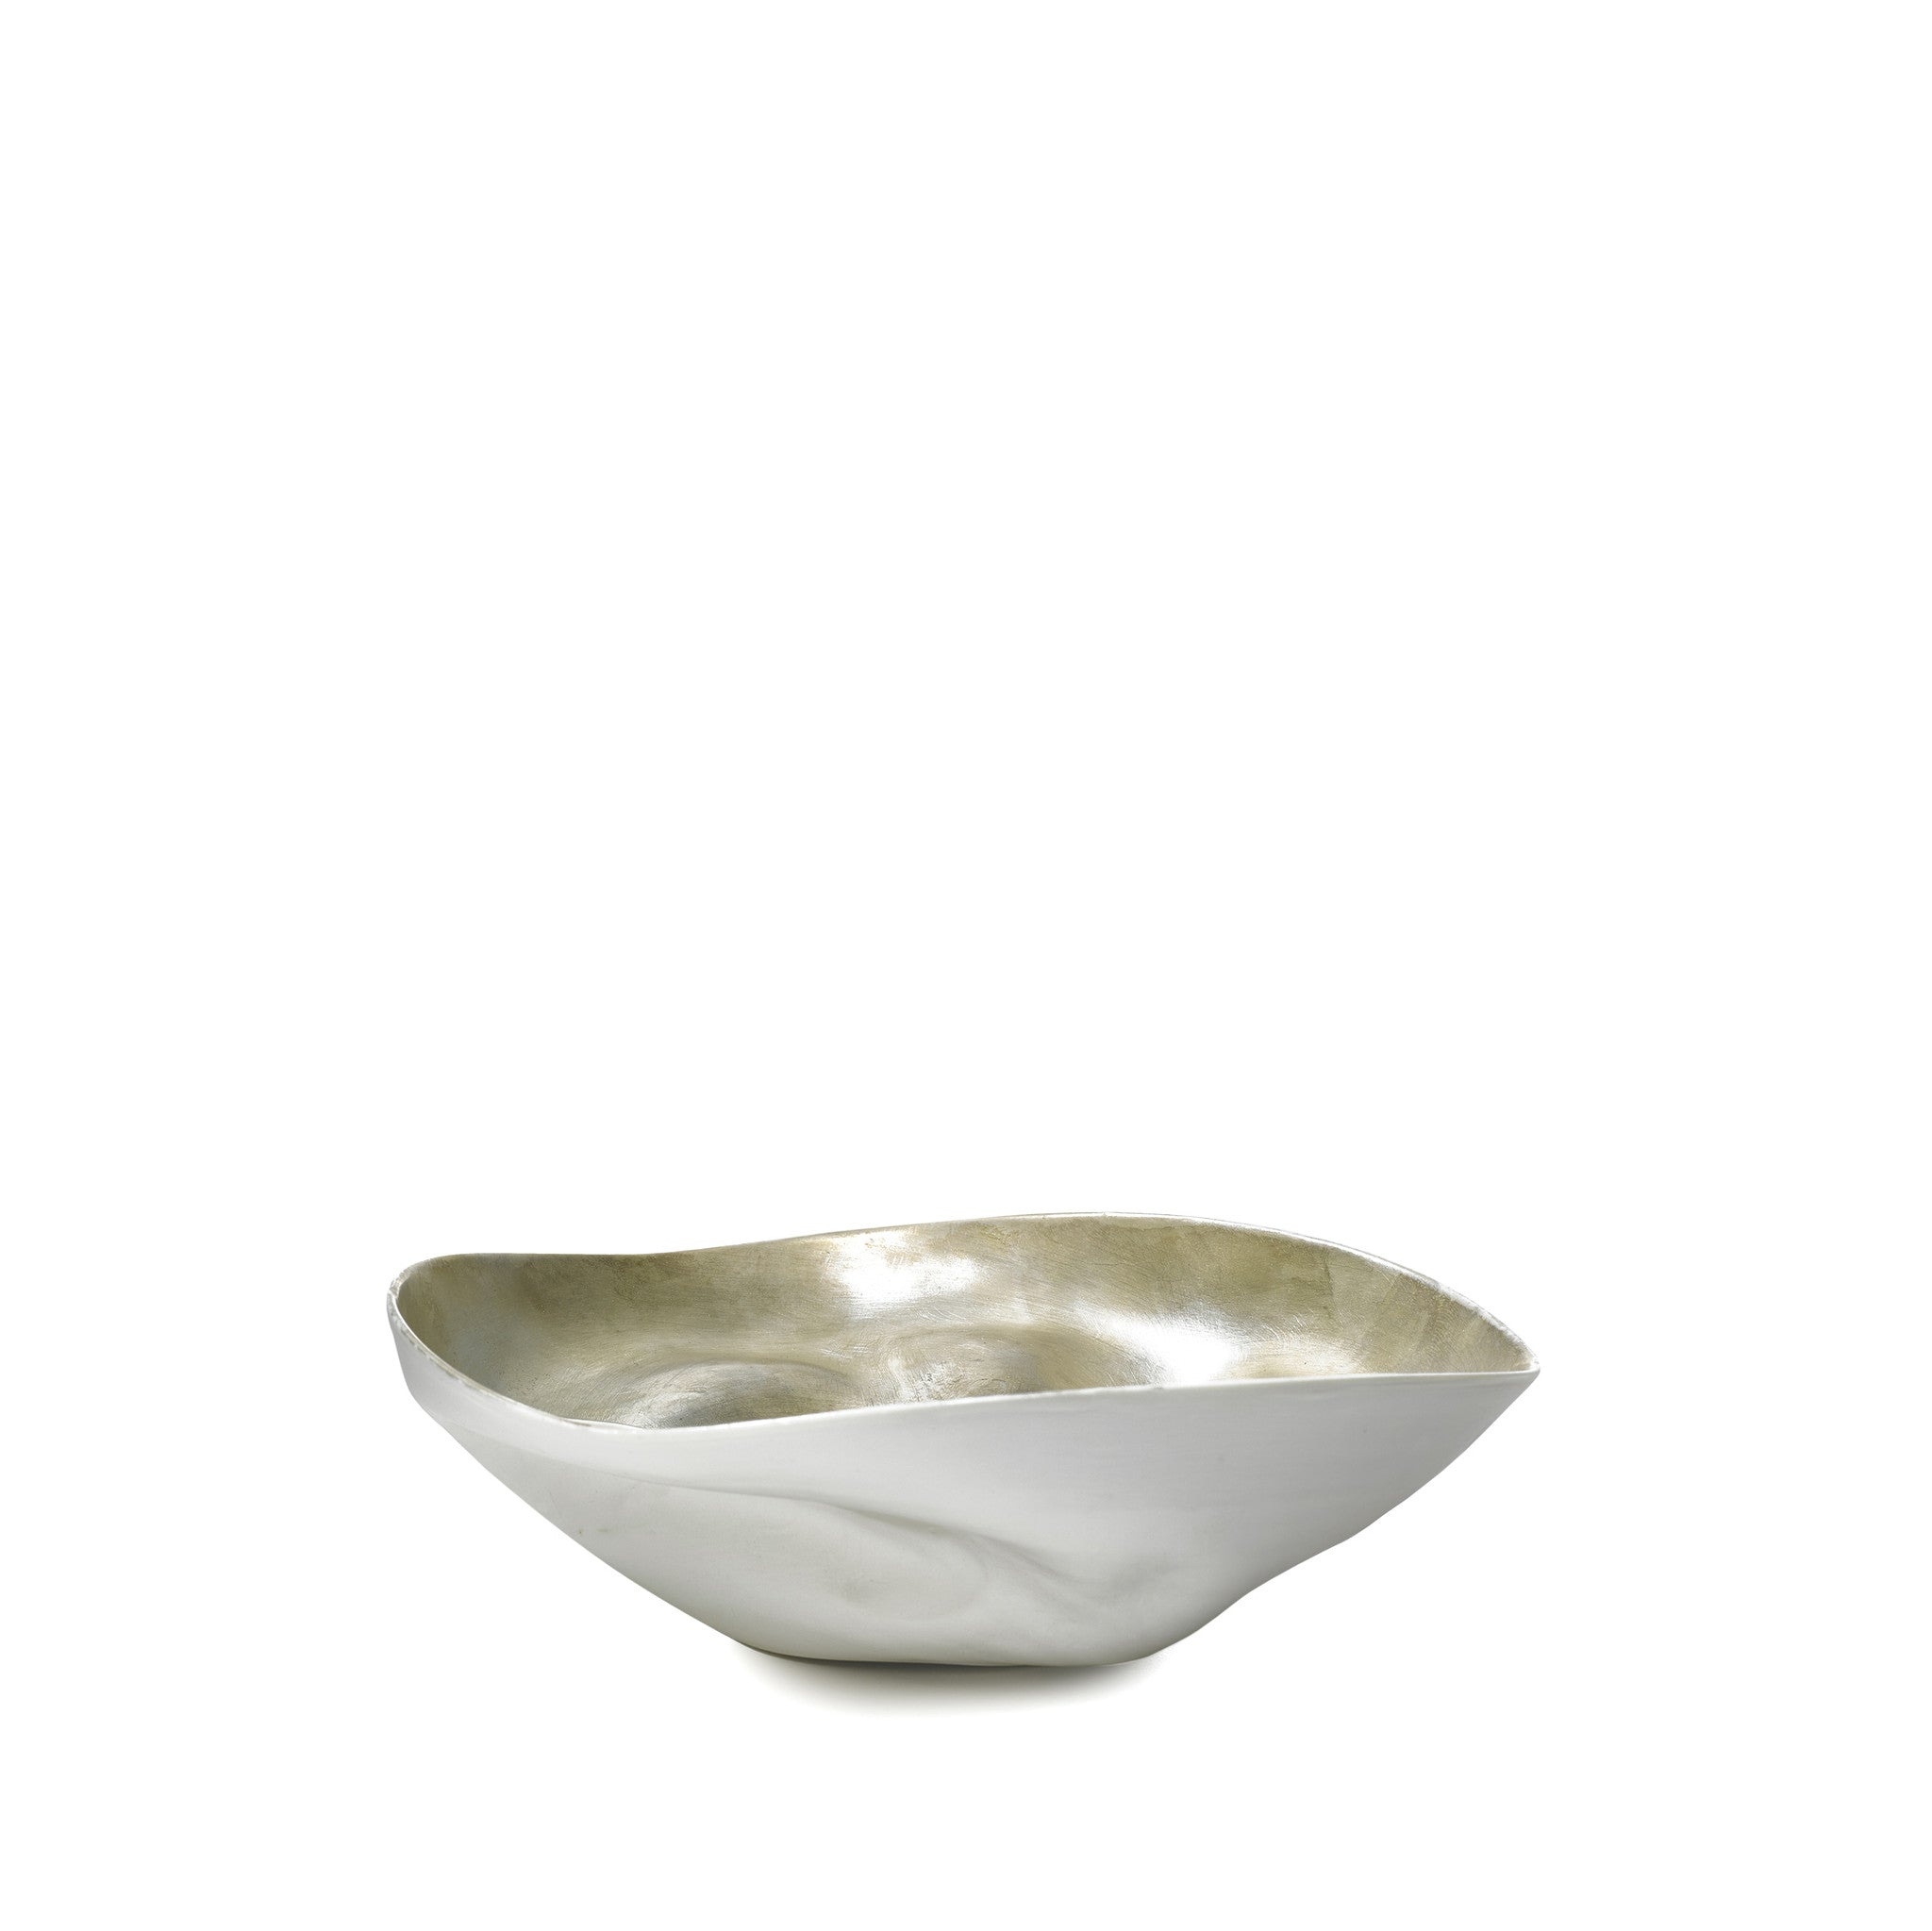 Medium Porcelain Shell Bowl in Matte Silver, 18cm